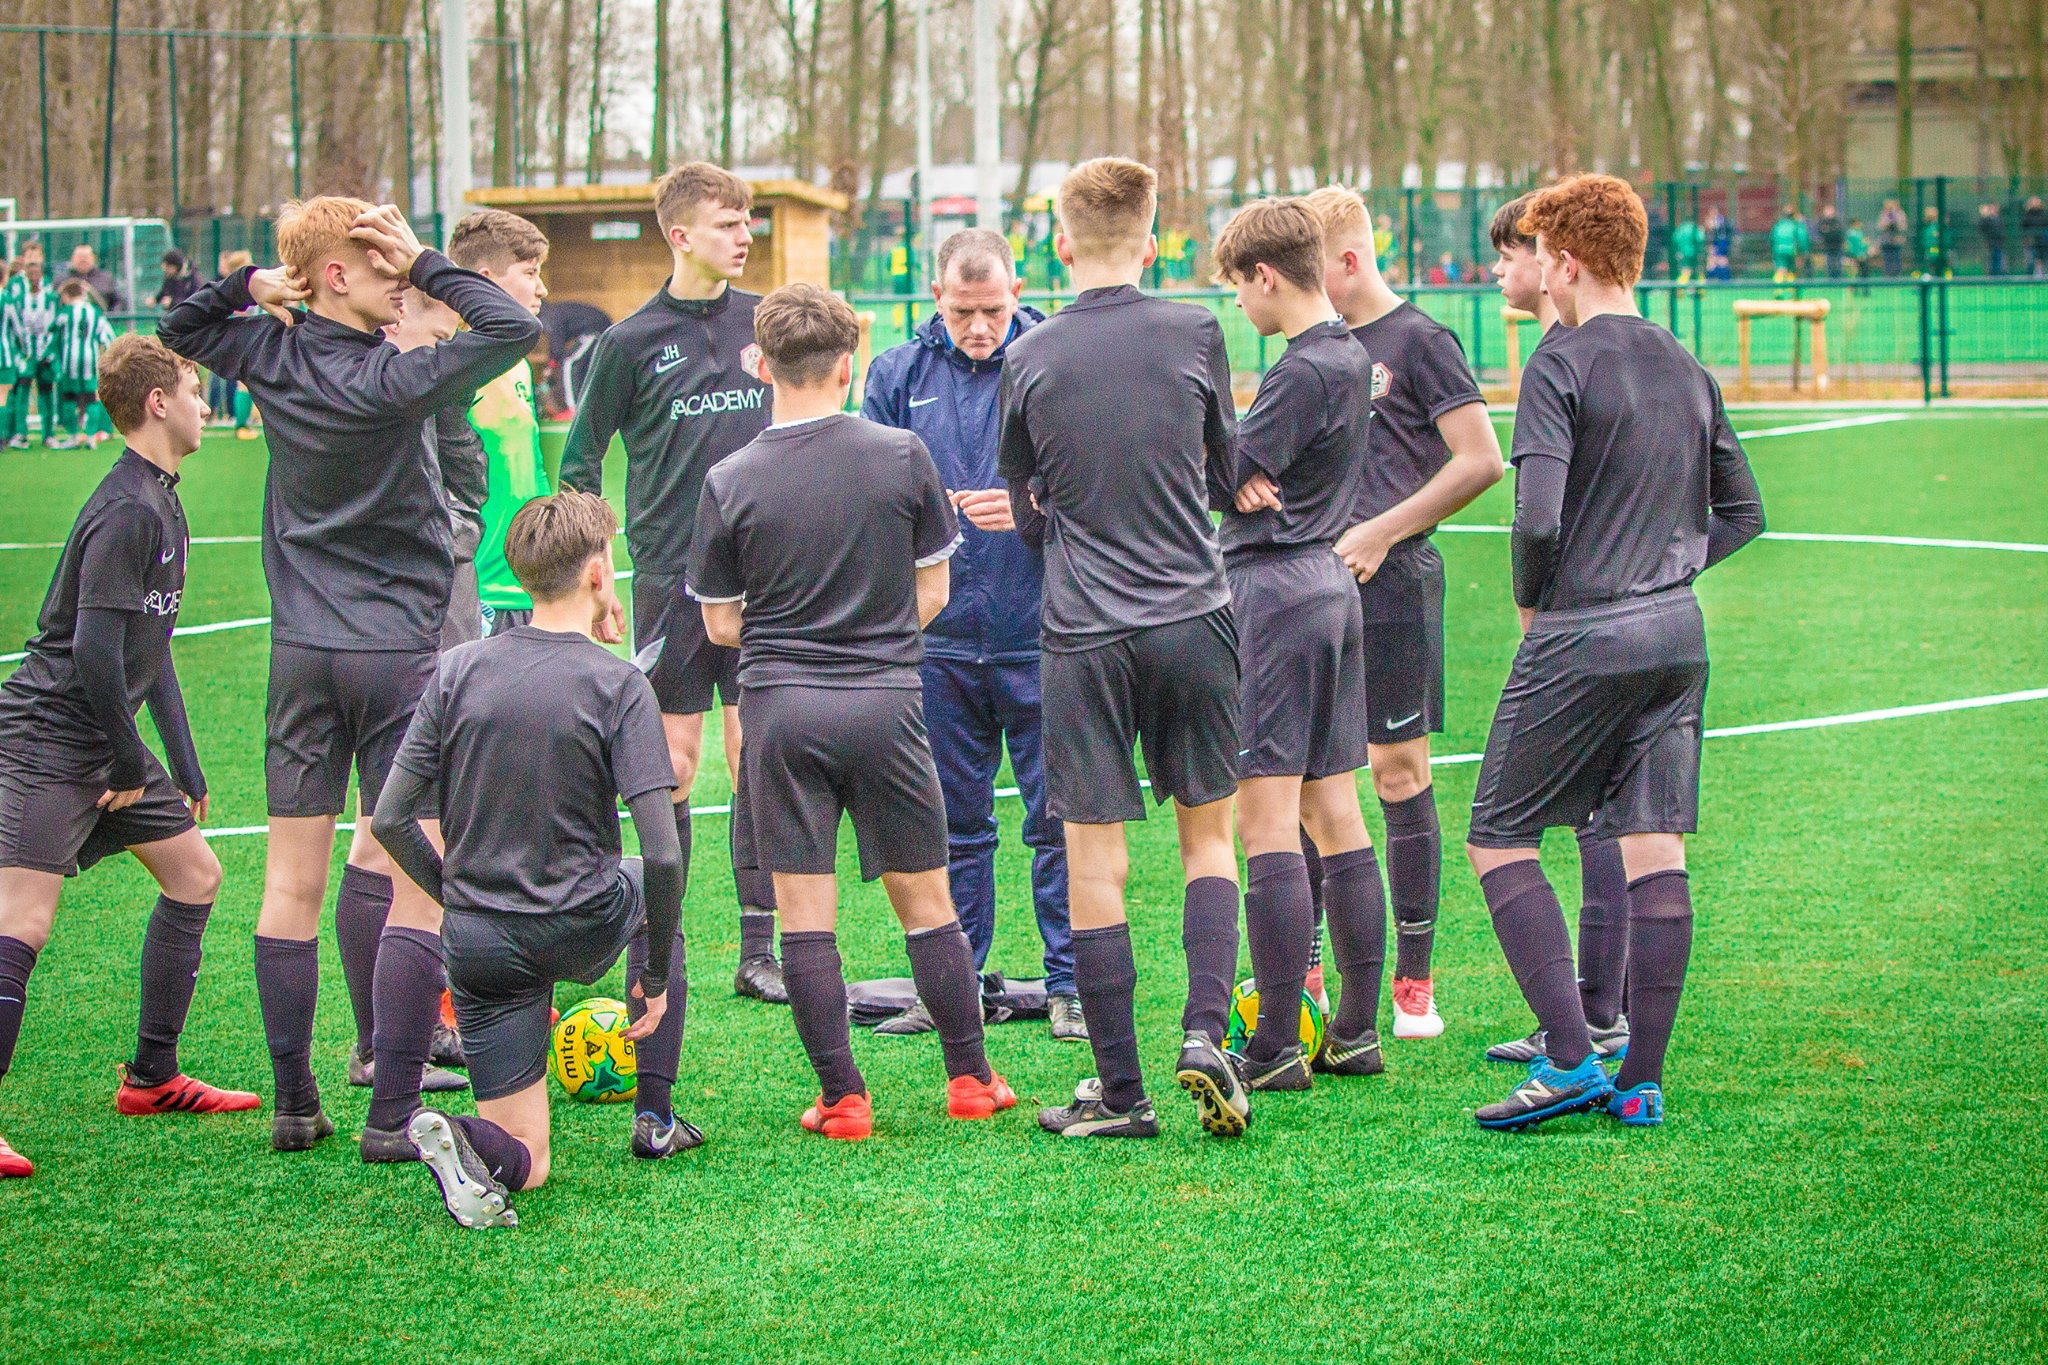 FIXTURES - A CHALLENGING FIXTURE PROGRAMME TO TEST AND GROW OUR PLAYERSFIXTURES AGAINST PROFESSIONAL CLUBS SUCHS AS WATFORD, MK DONS, CHELSEA, NORWICH CITY, BARNETT, SPURS, IPSWICH TOWN, NORTHAMPTON, STEVENAGE AND MANY MORE.